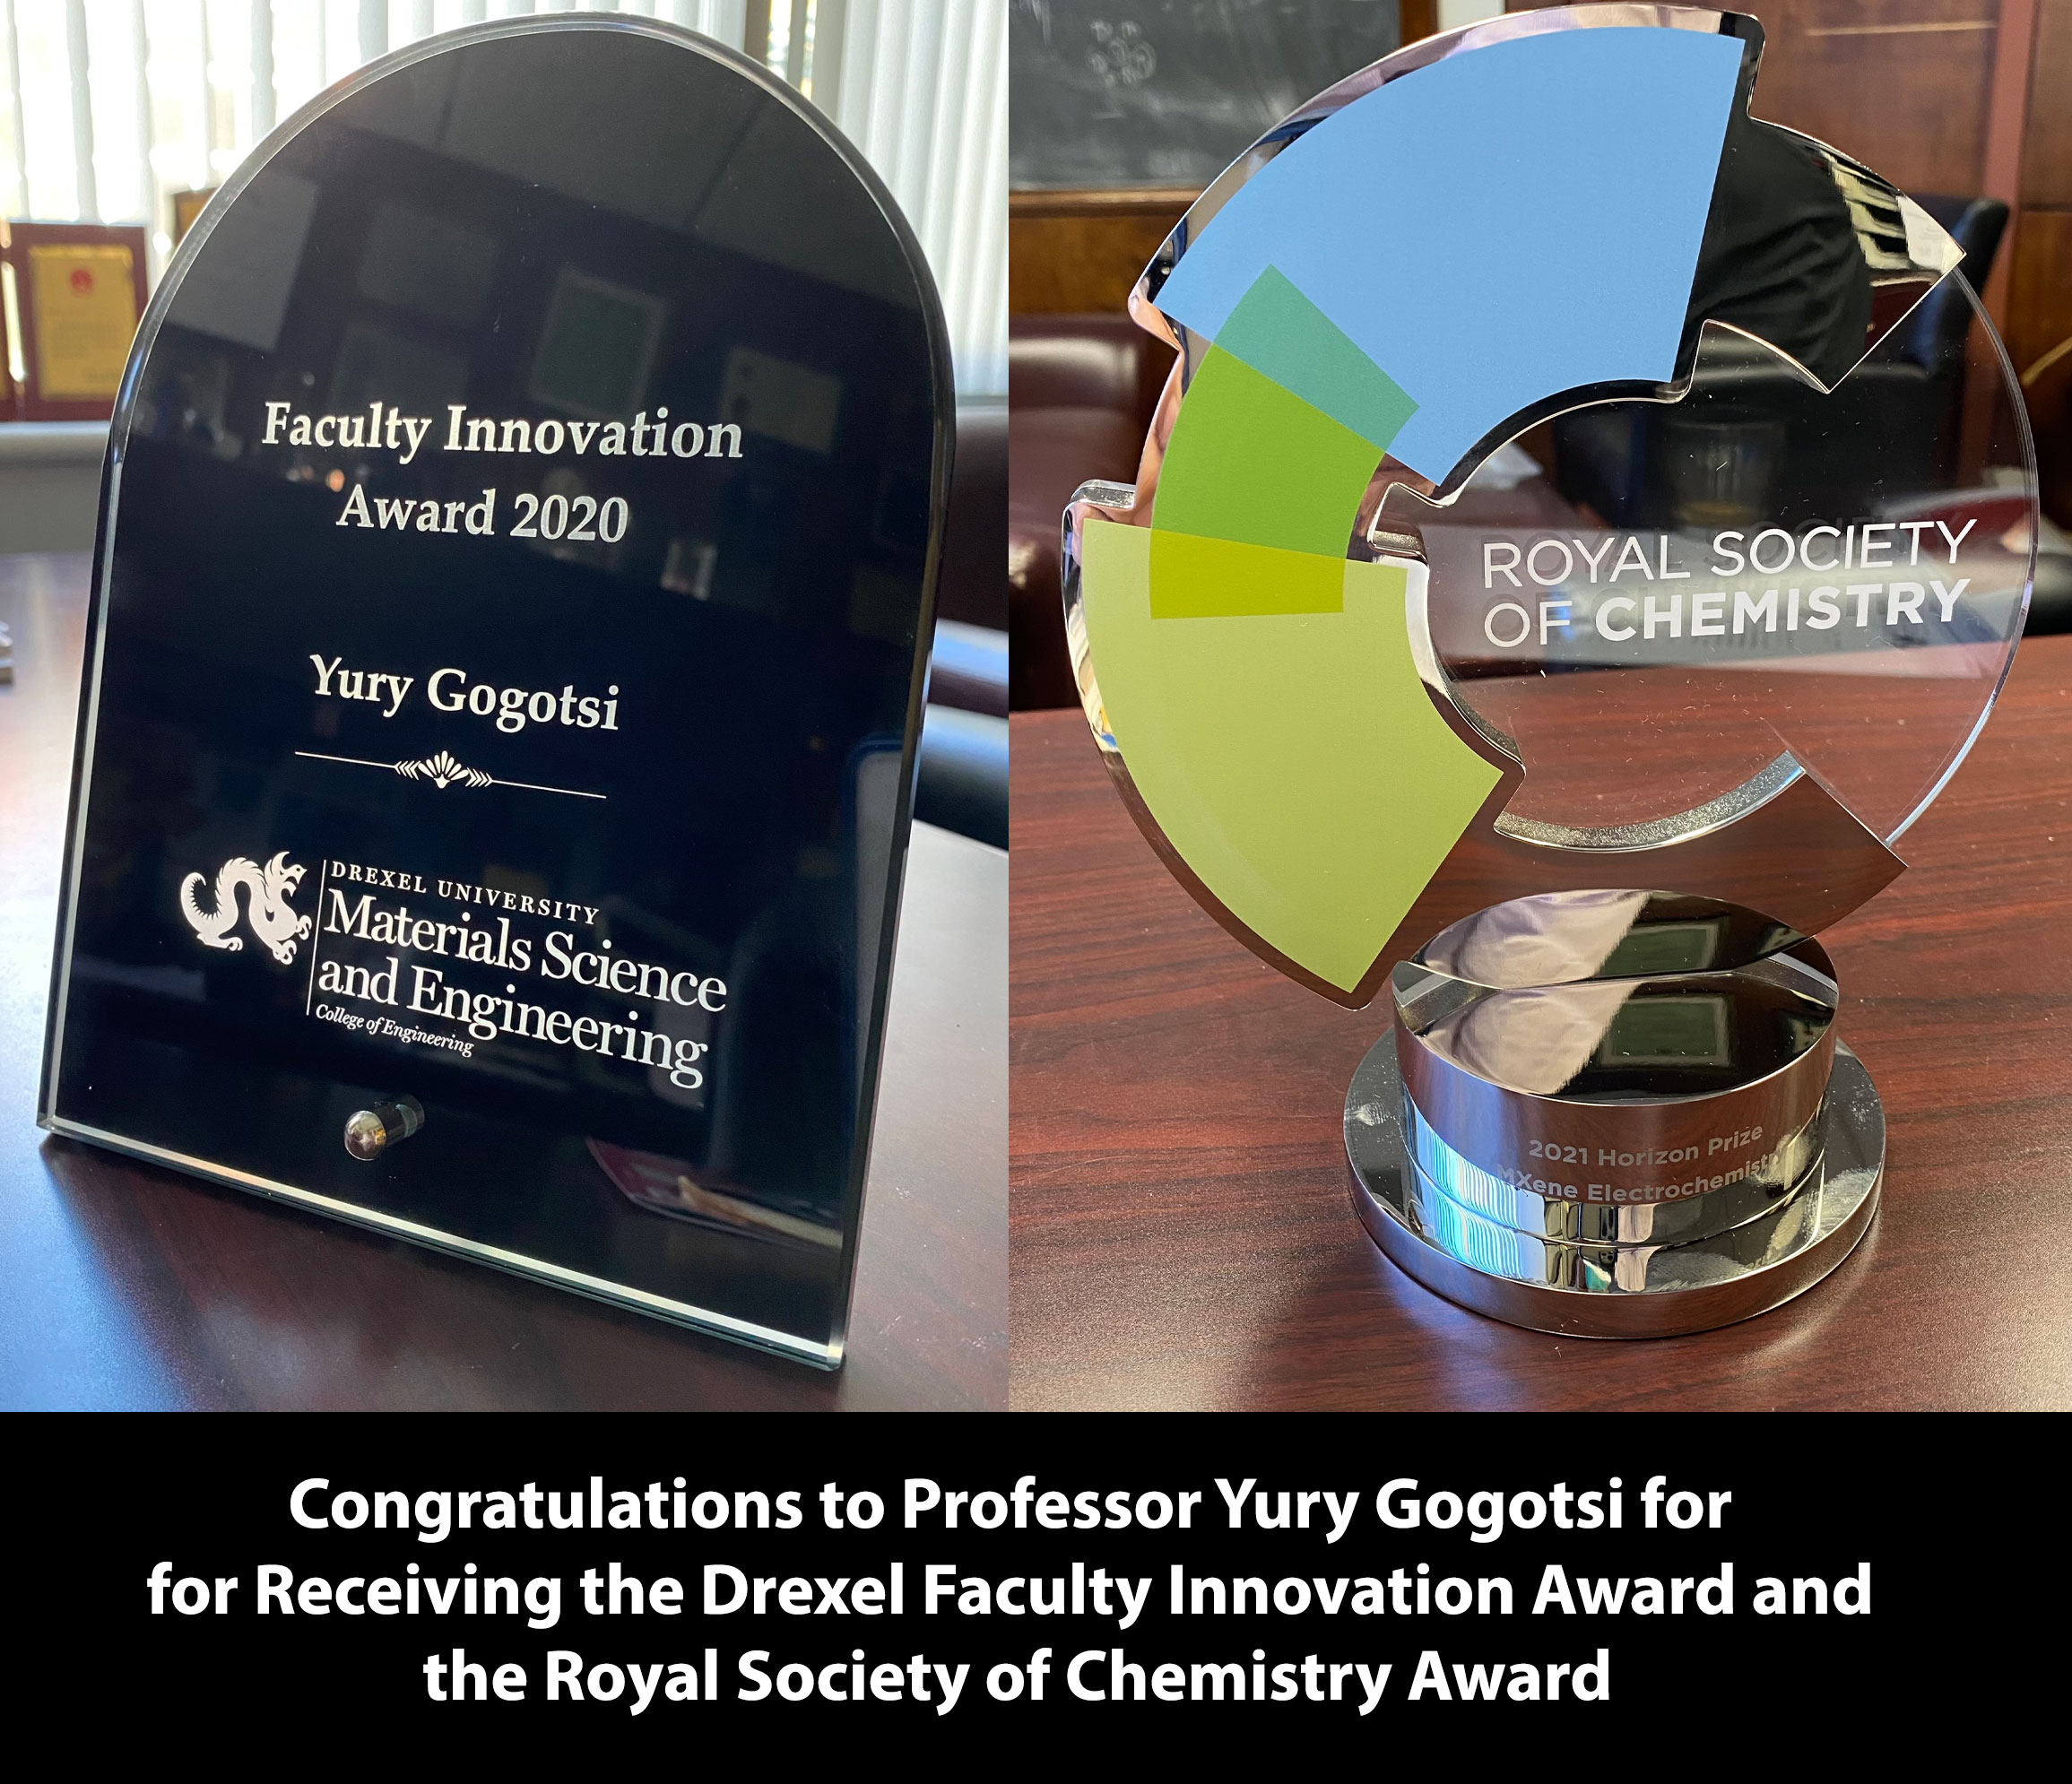 Congratulations to Professor Yury  Gogotsi for Receiving the Drexel Faculty Innovation Award and the Royal Society of Chemistry Award